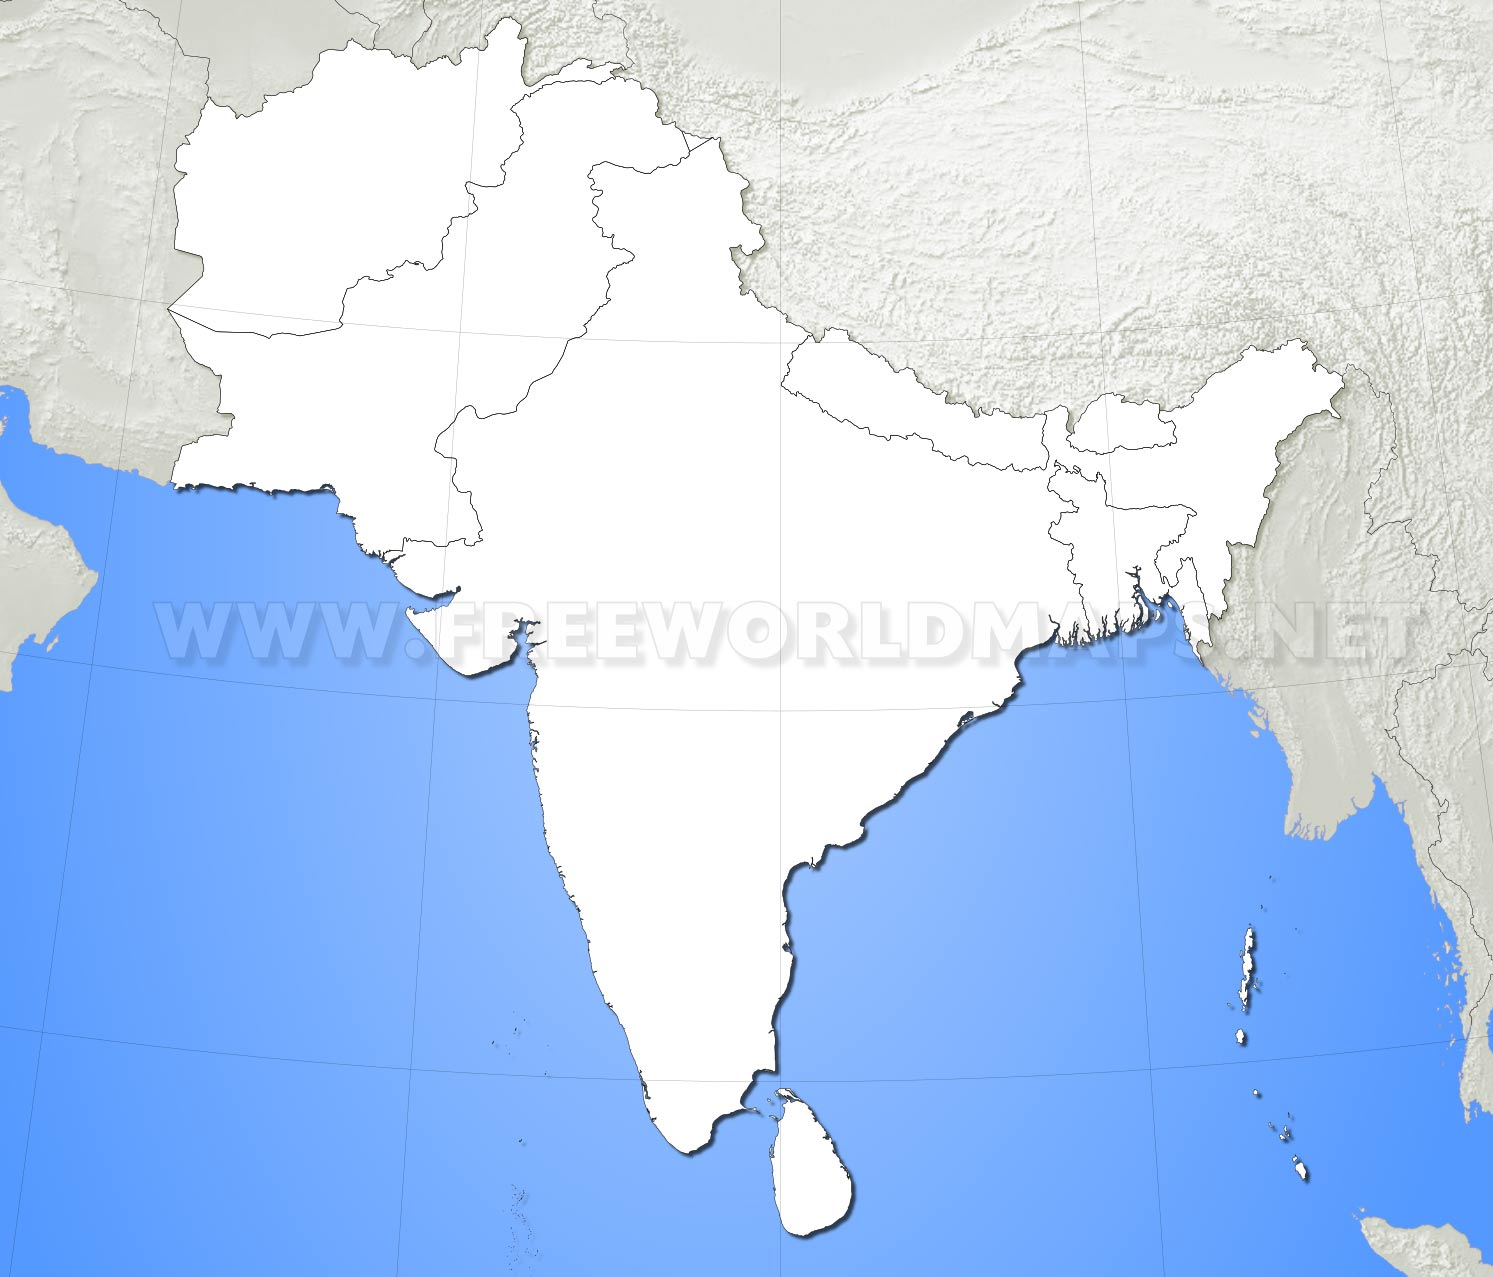 South asia maps south asia cities major cities of south asia south asia blank map hd gumiabroncs